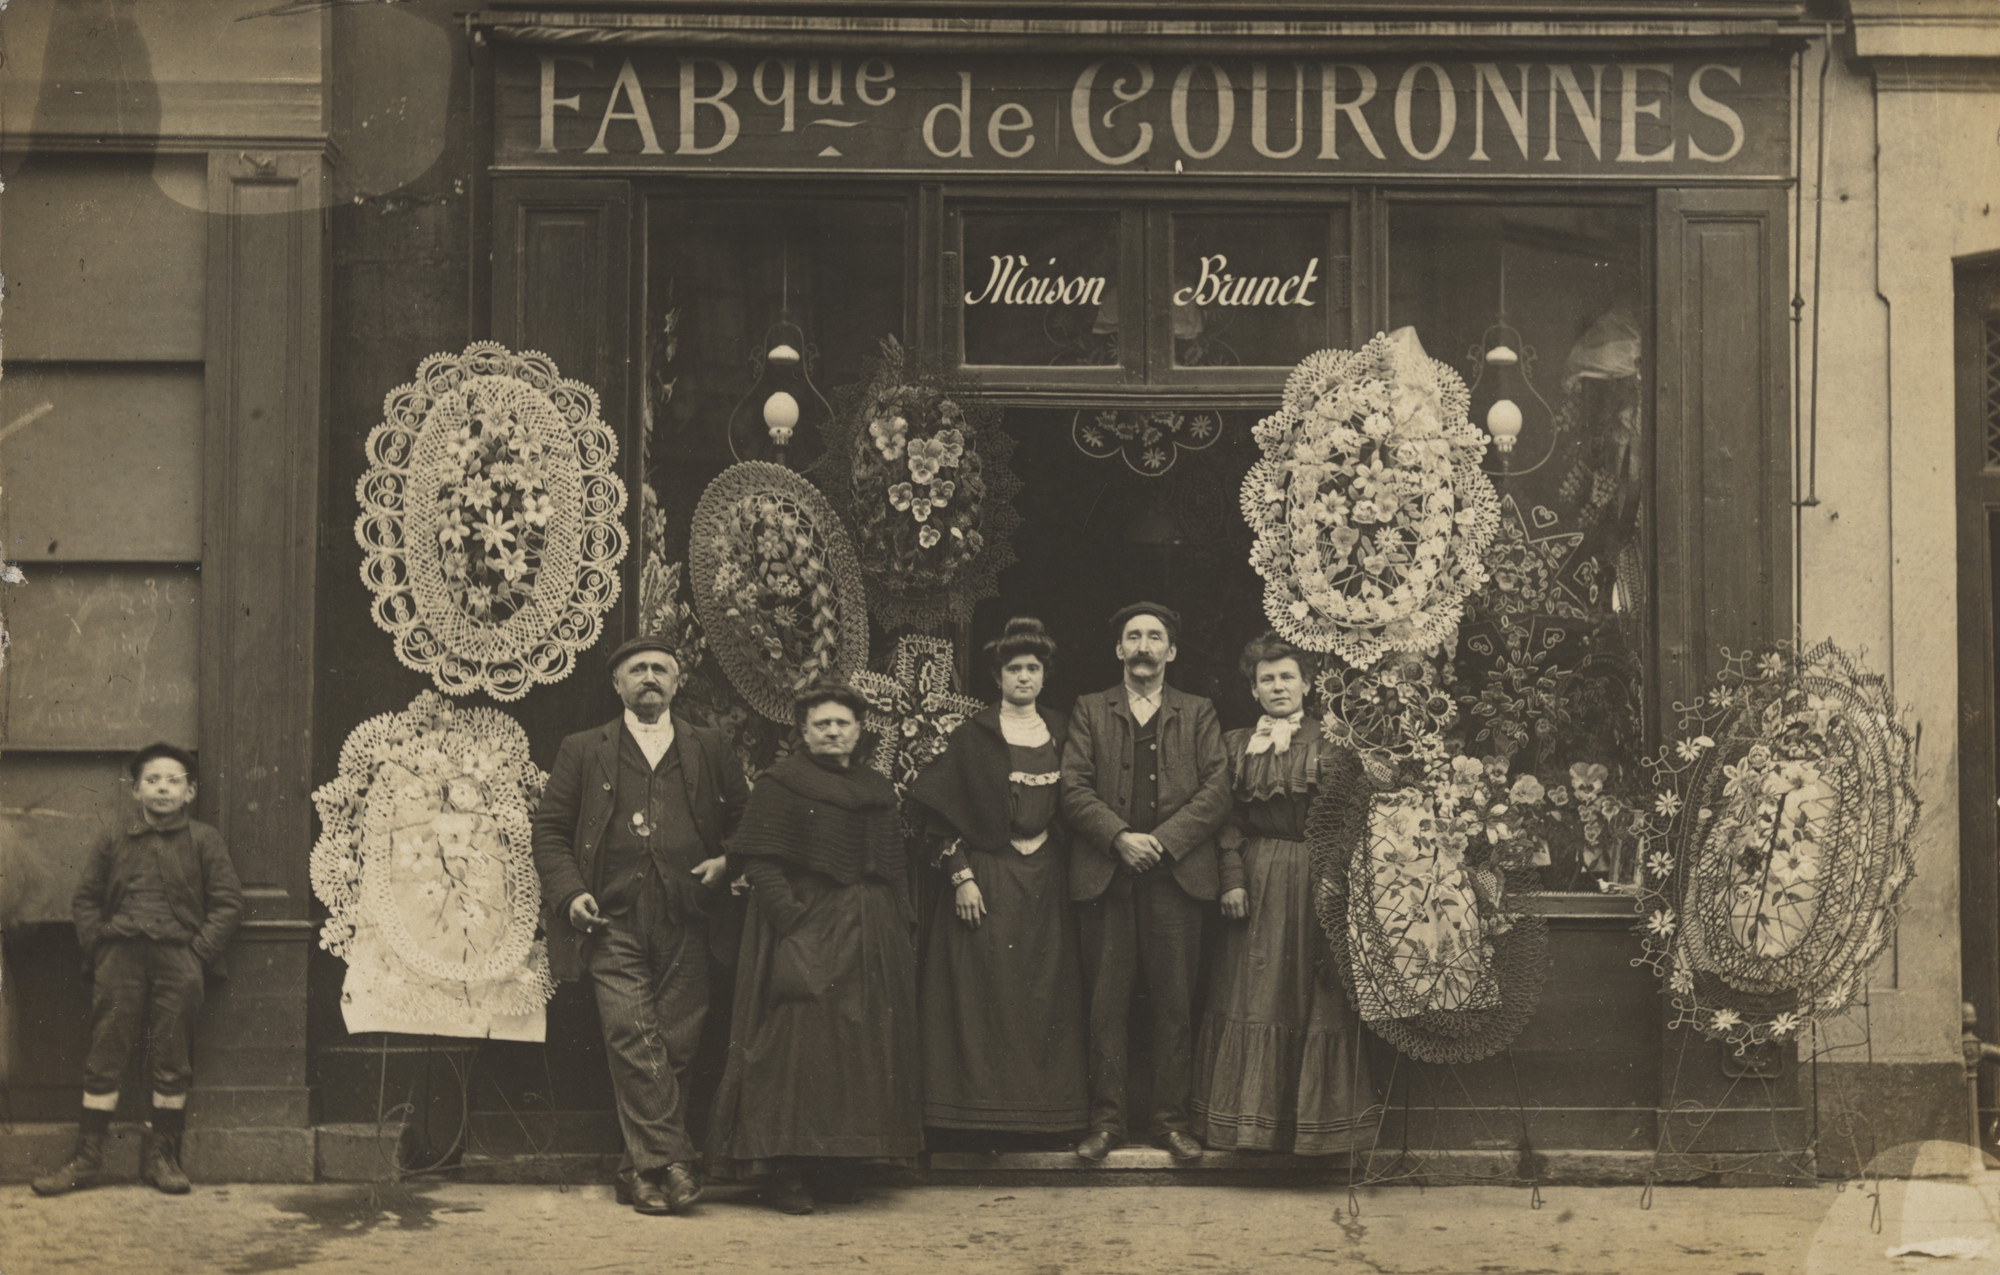 Unknown photographer. Maison Brunet, Fabque de couronnes, 145, rue de Charenton, Papiers photographiques – Duvau, Paris. 1903